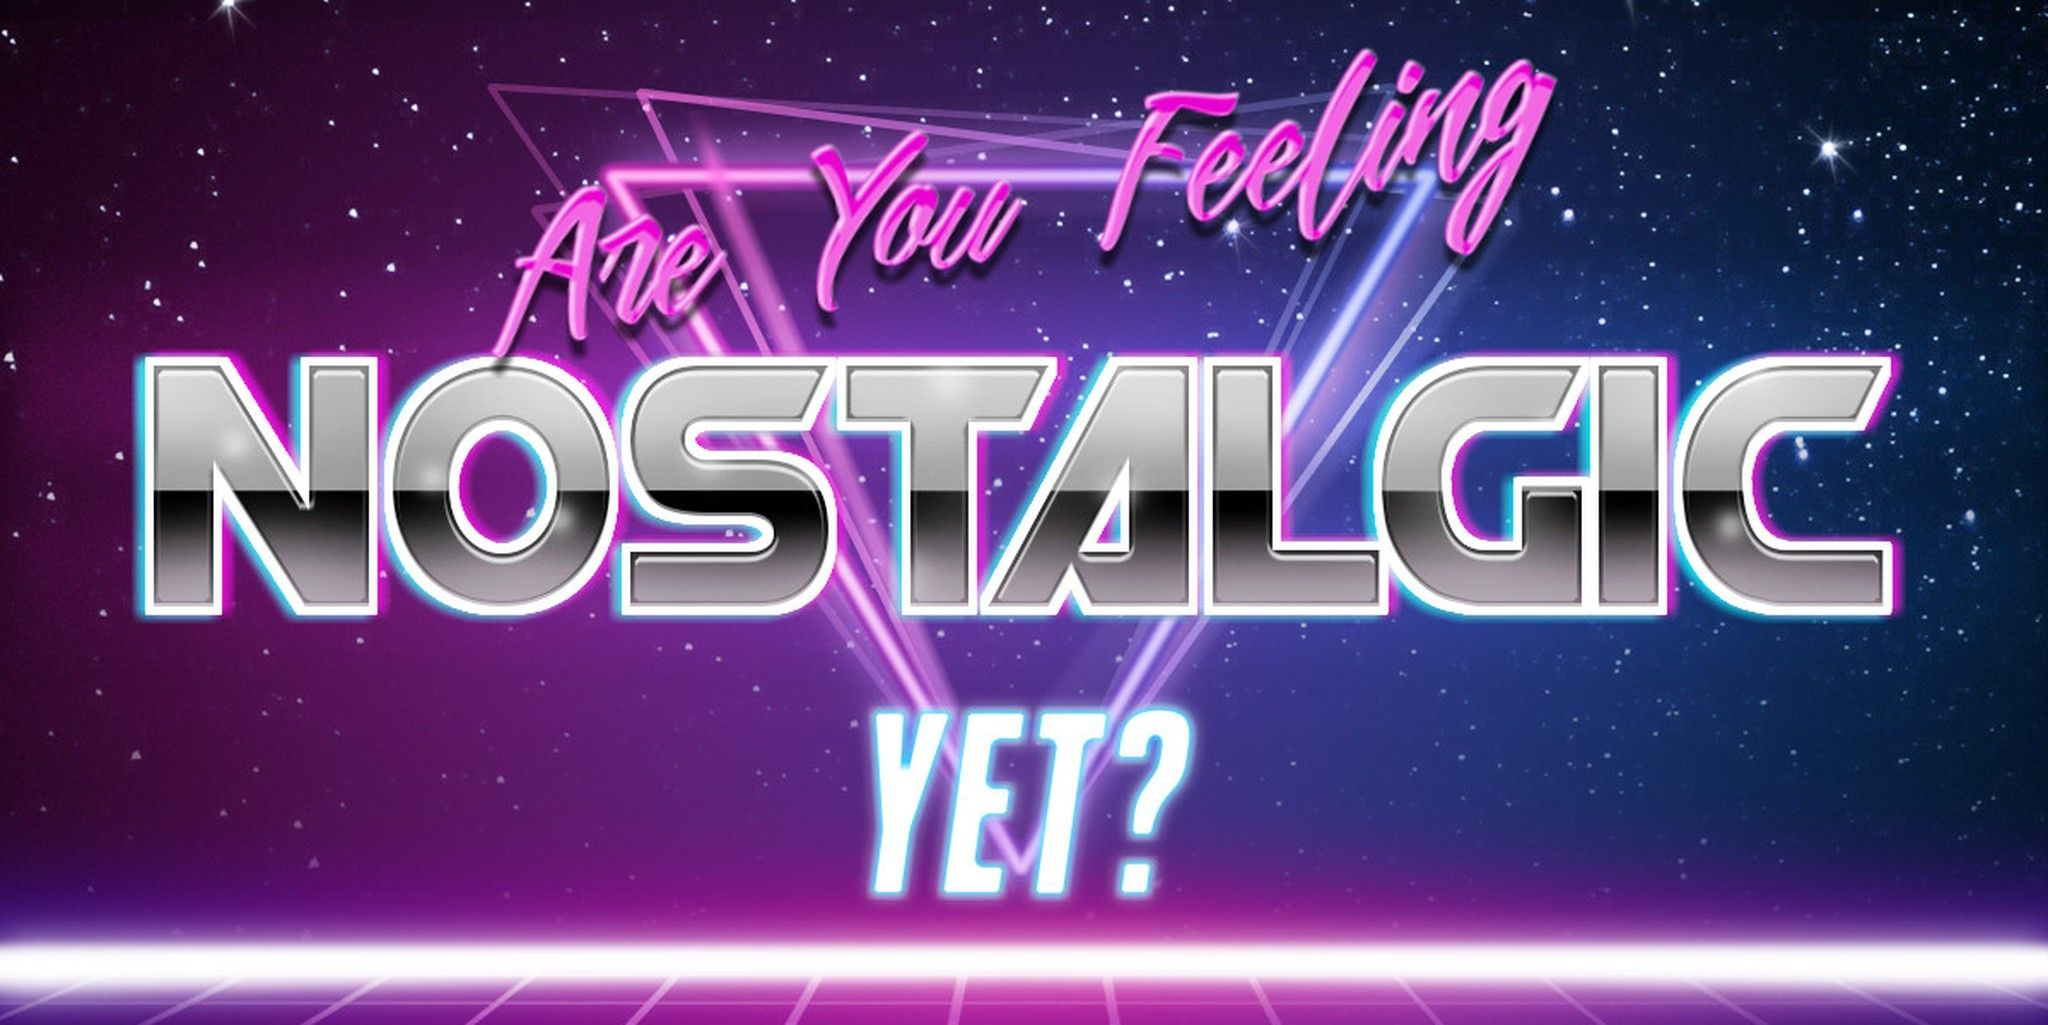 Everyone's going crazy for this totally rad '80s text